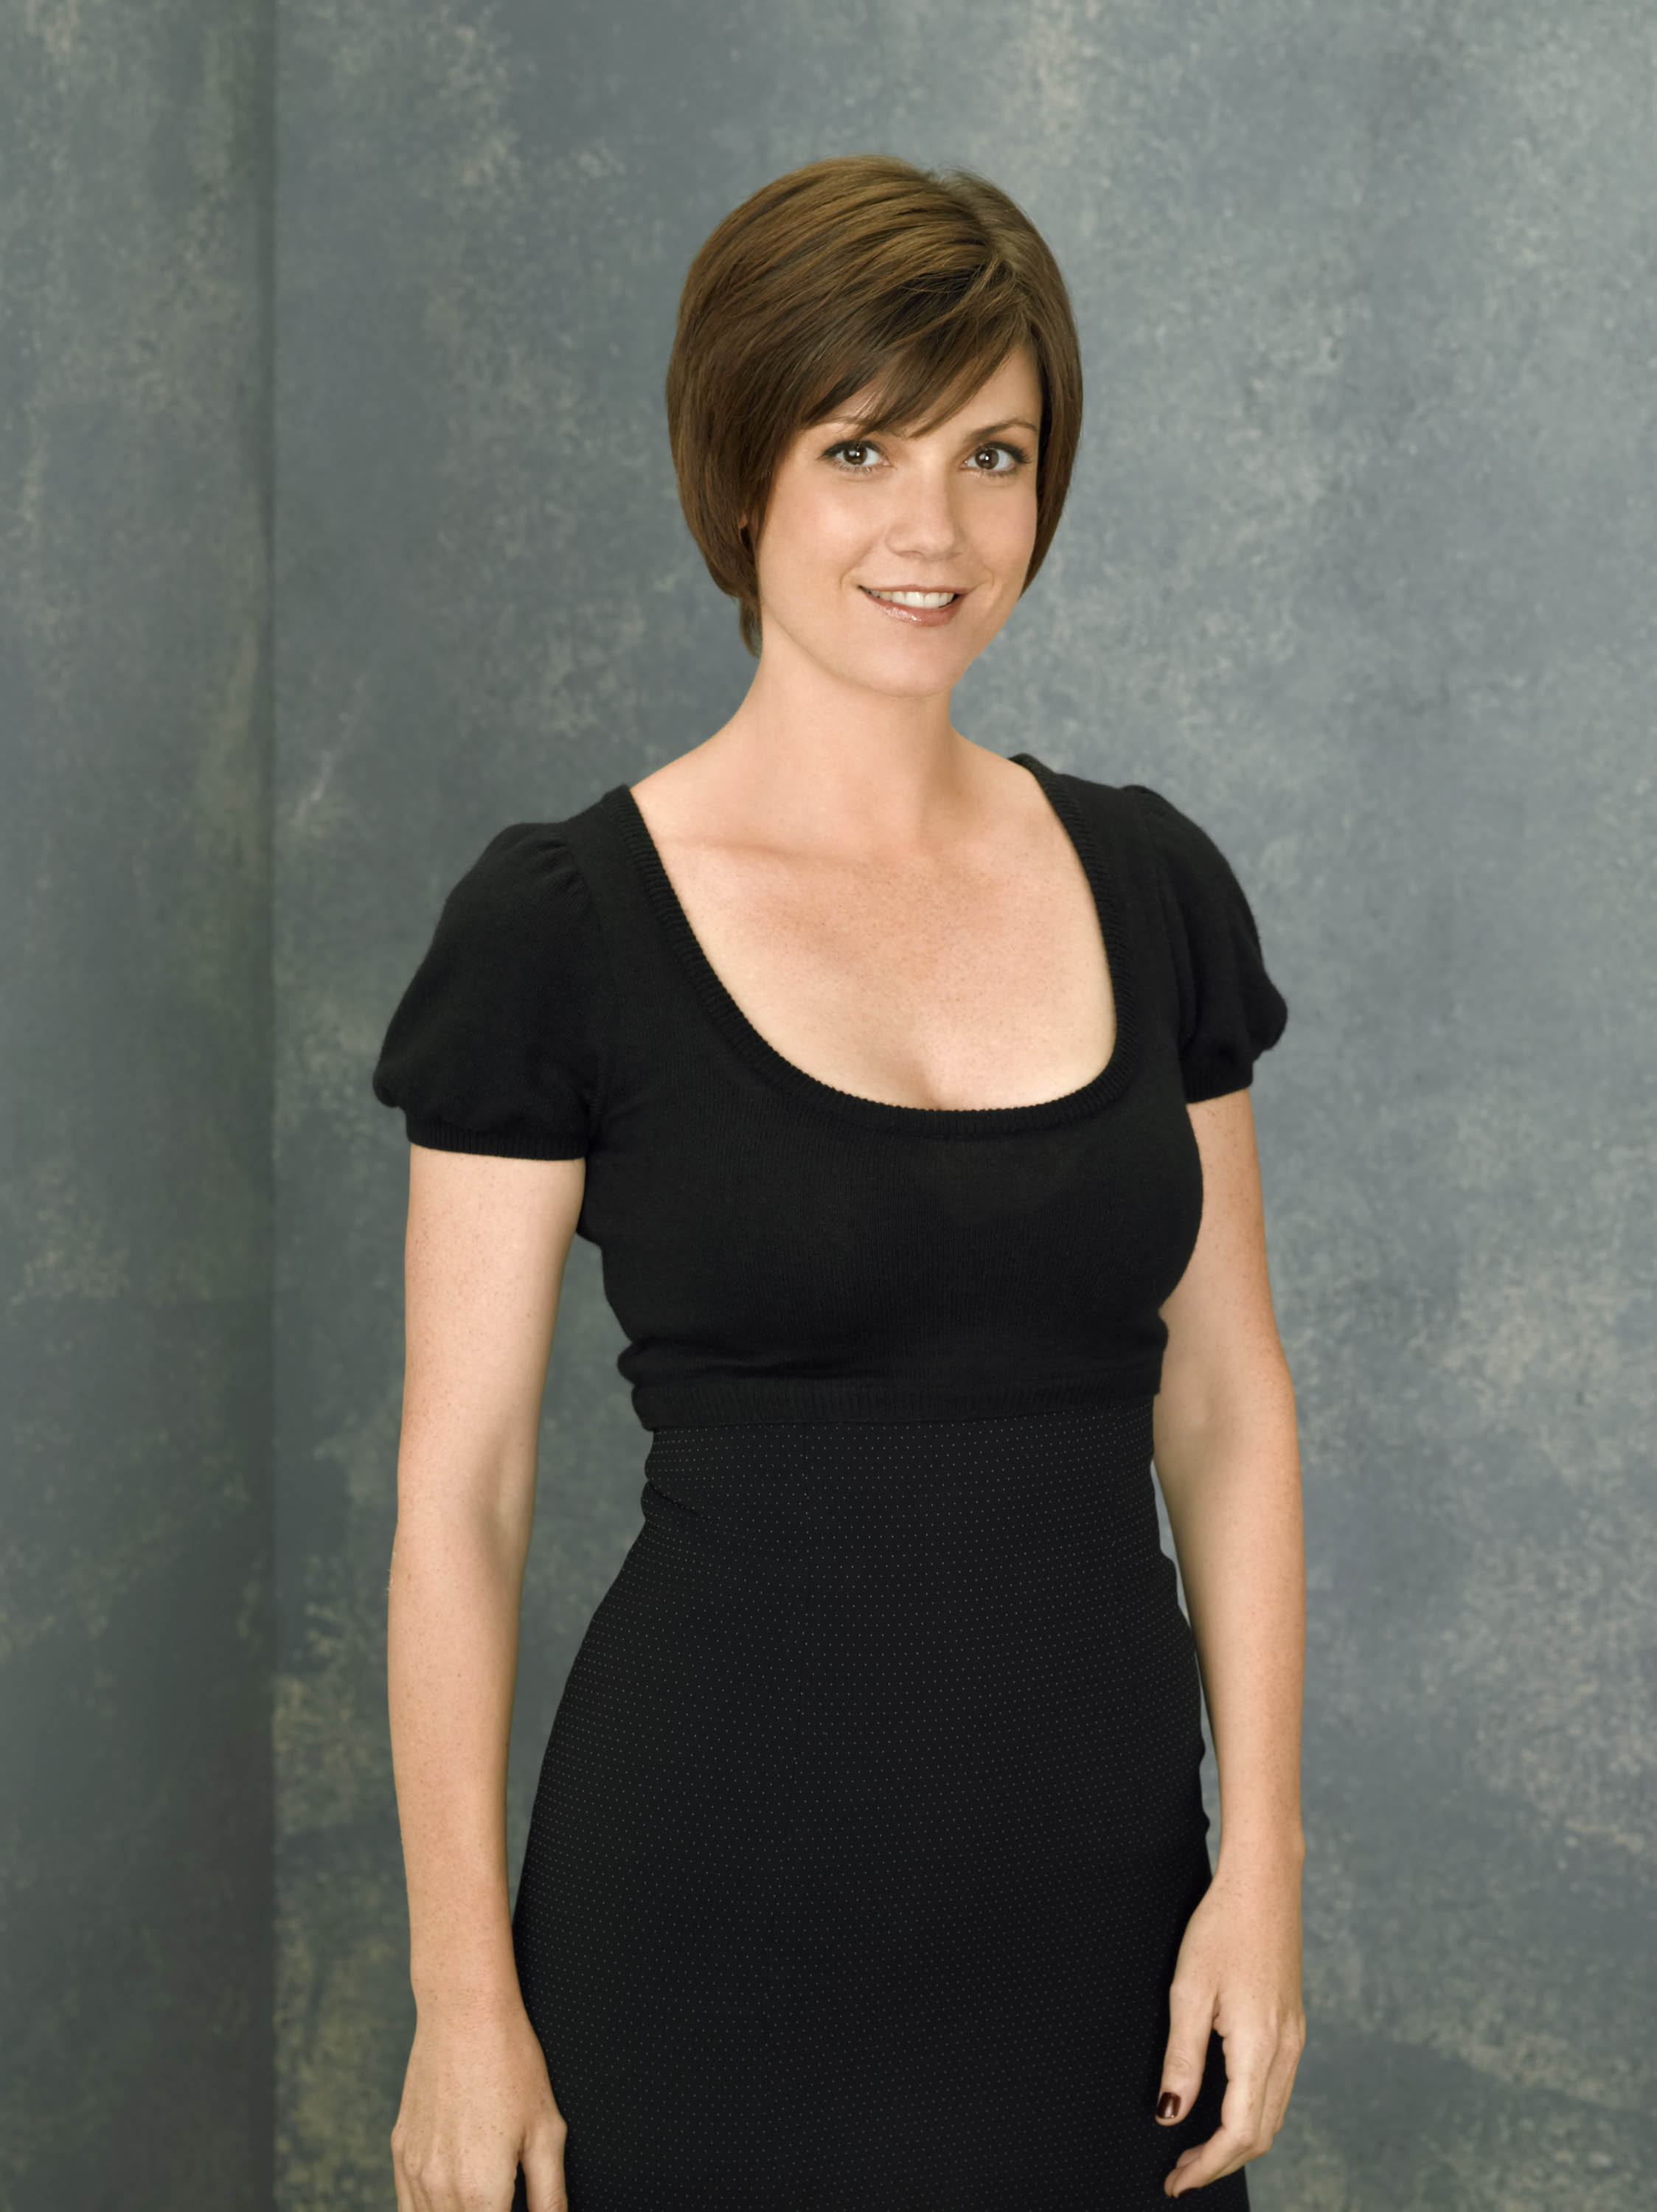 sexy pictures of zoe mclellan